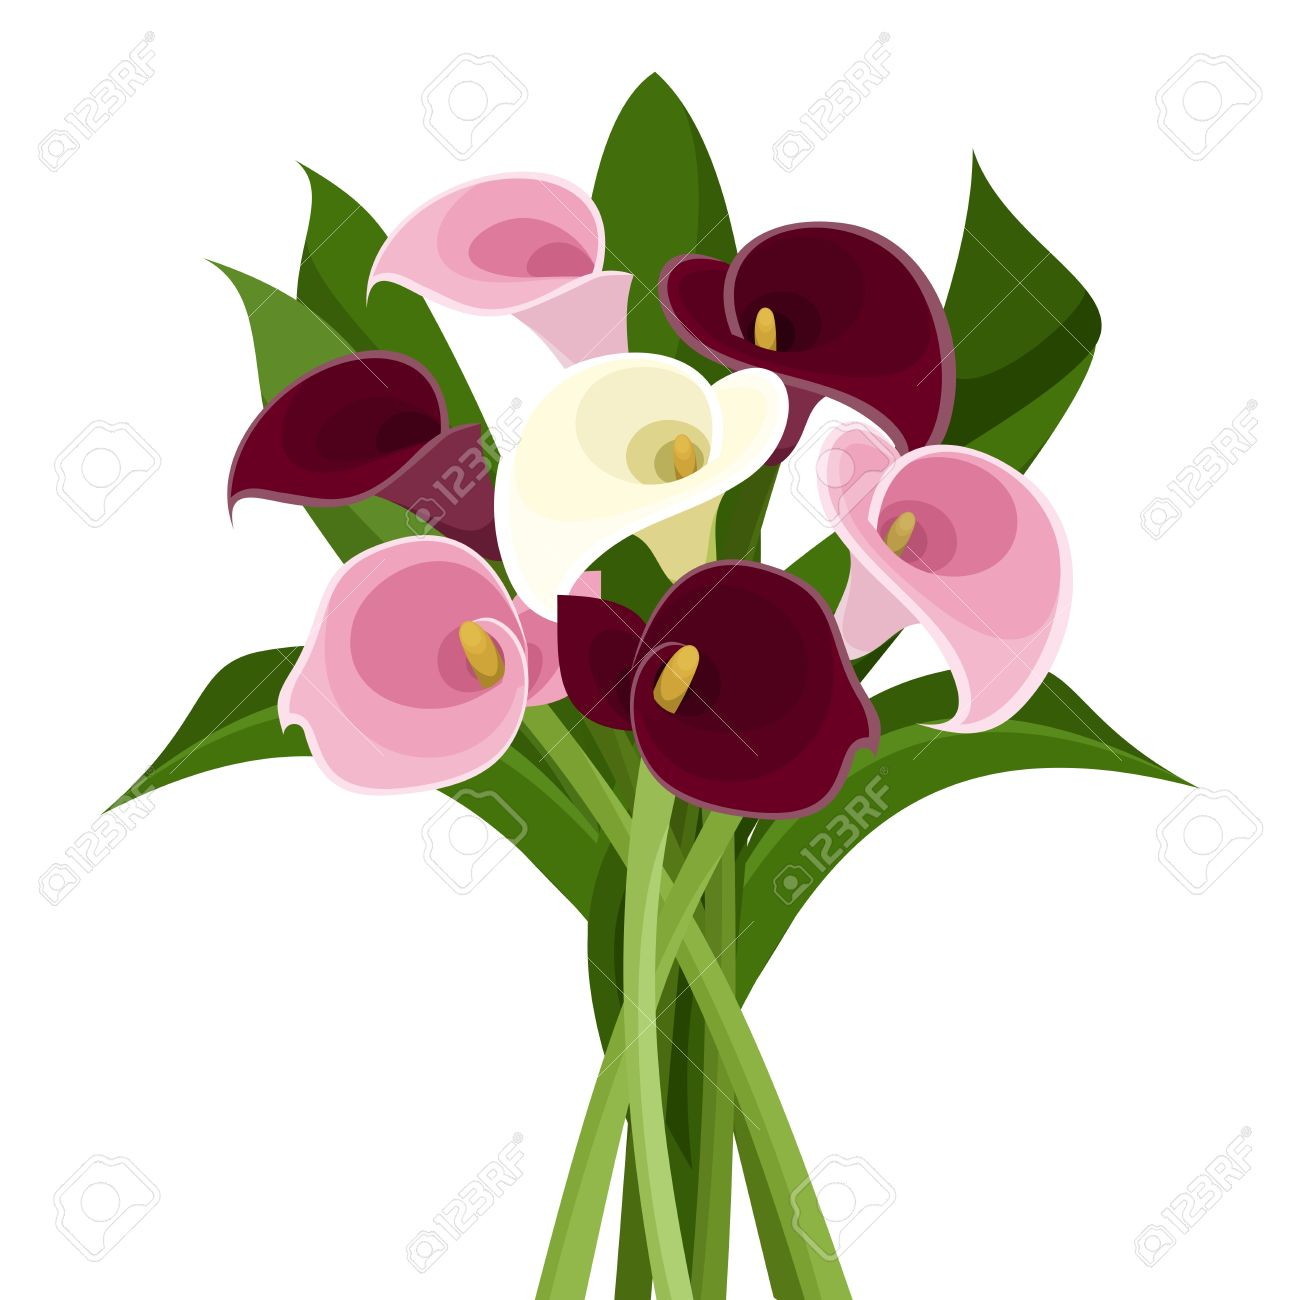 bouquet of colored calla lilies vector illustration royalty free rh 123rf com calla lily border clipart calla lily bouquet clipart